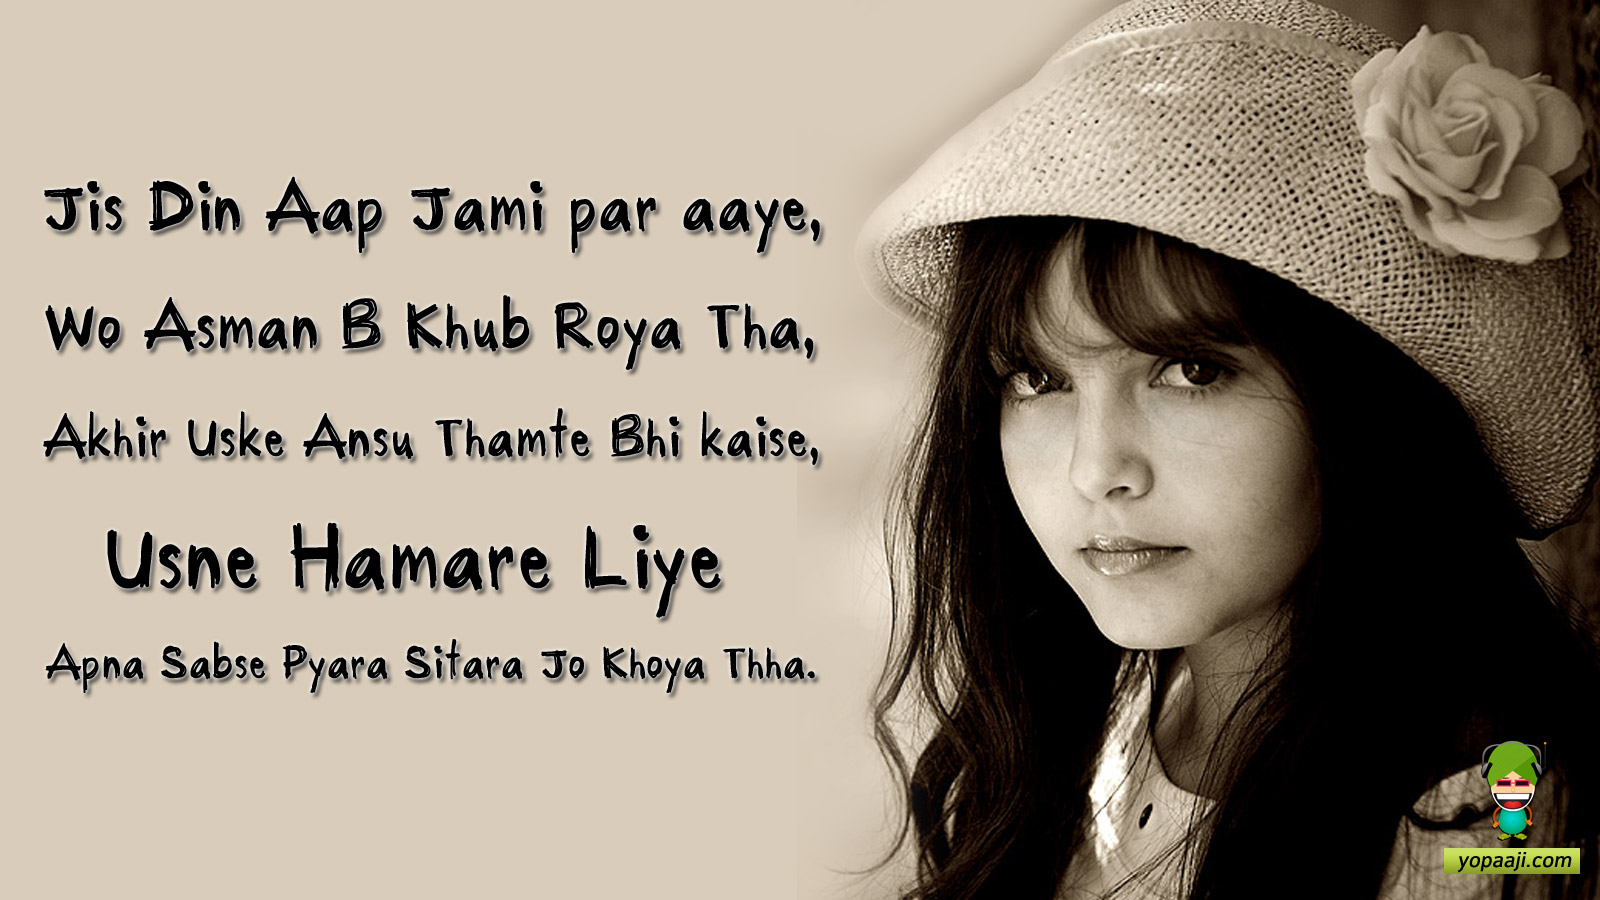 Love Shayri Wallpaper In English : Love SMS In Hindi Messages English In Urdu In Marathi Images Bangla Wallpapers In Tamil ...